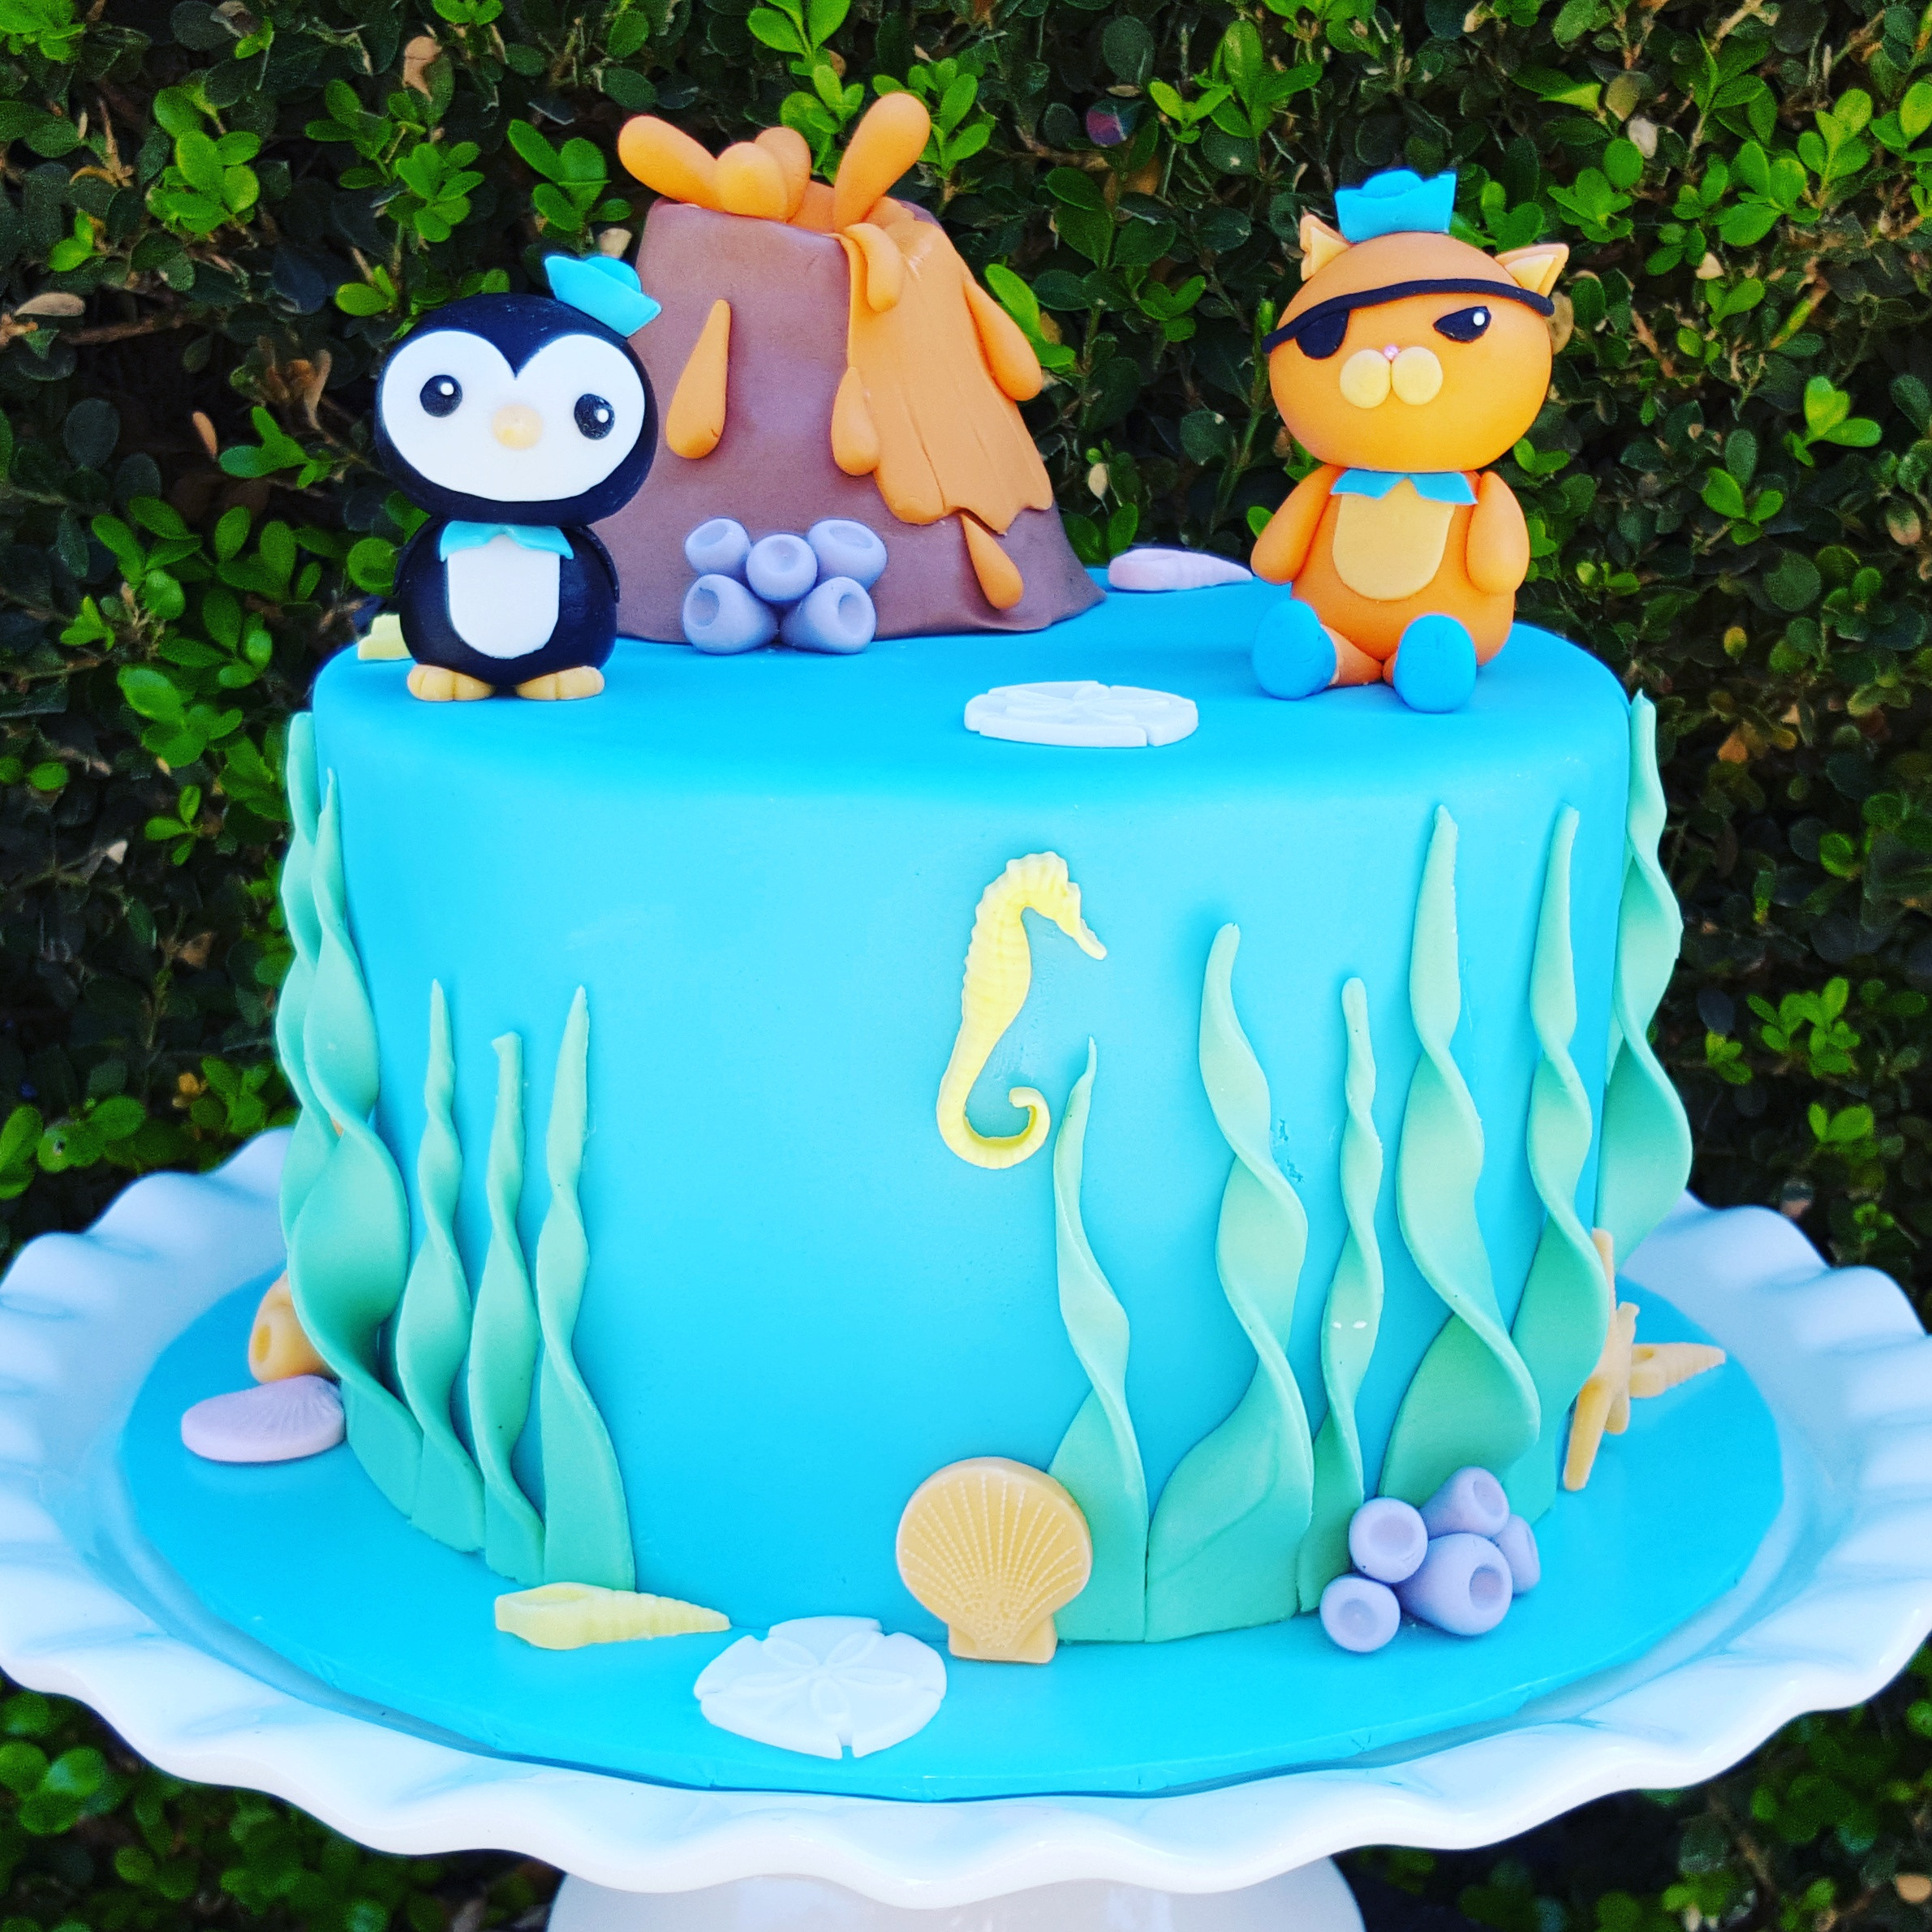 Best ideas about Kids Birthday Cake . Save or Pin Kids Birthday Cakes by Paper Street Cake in Orange County CA Now.